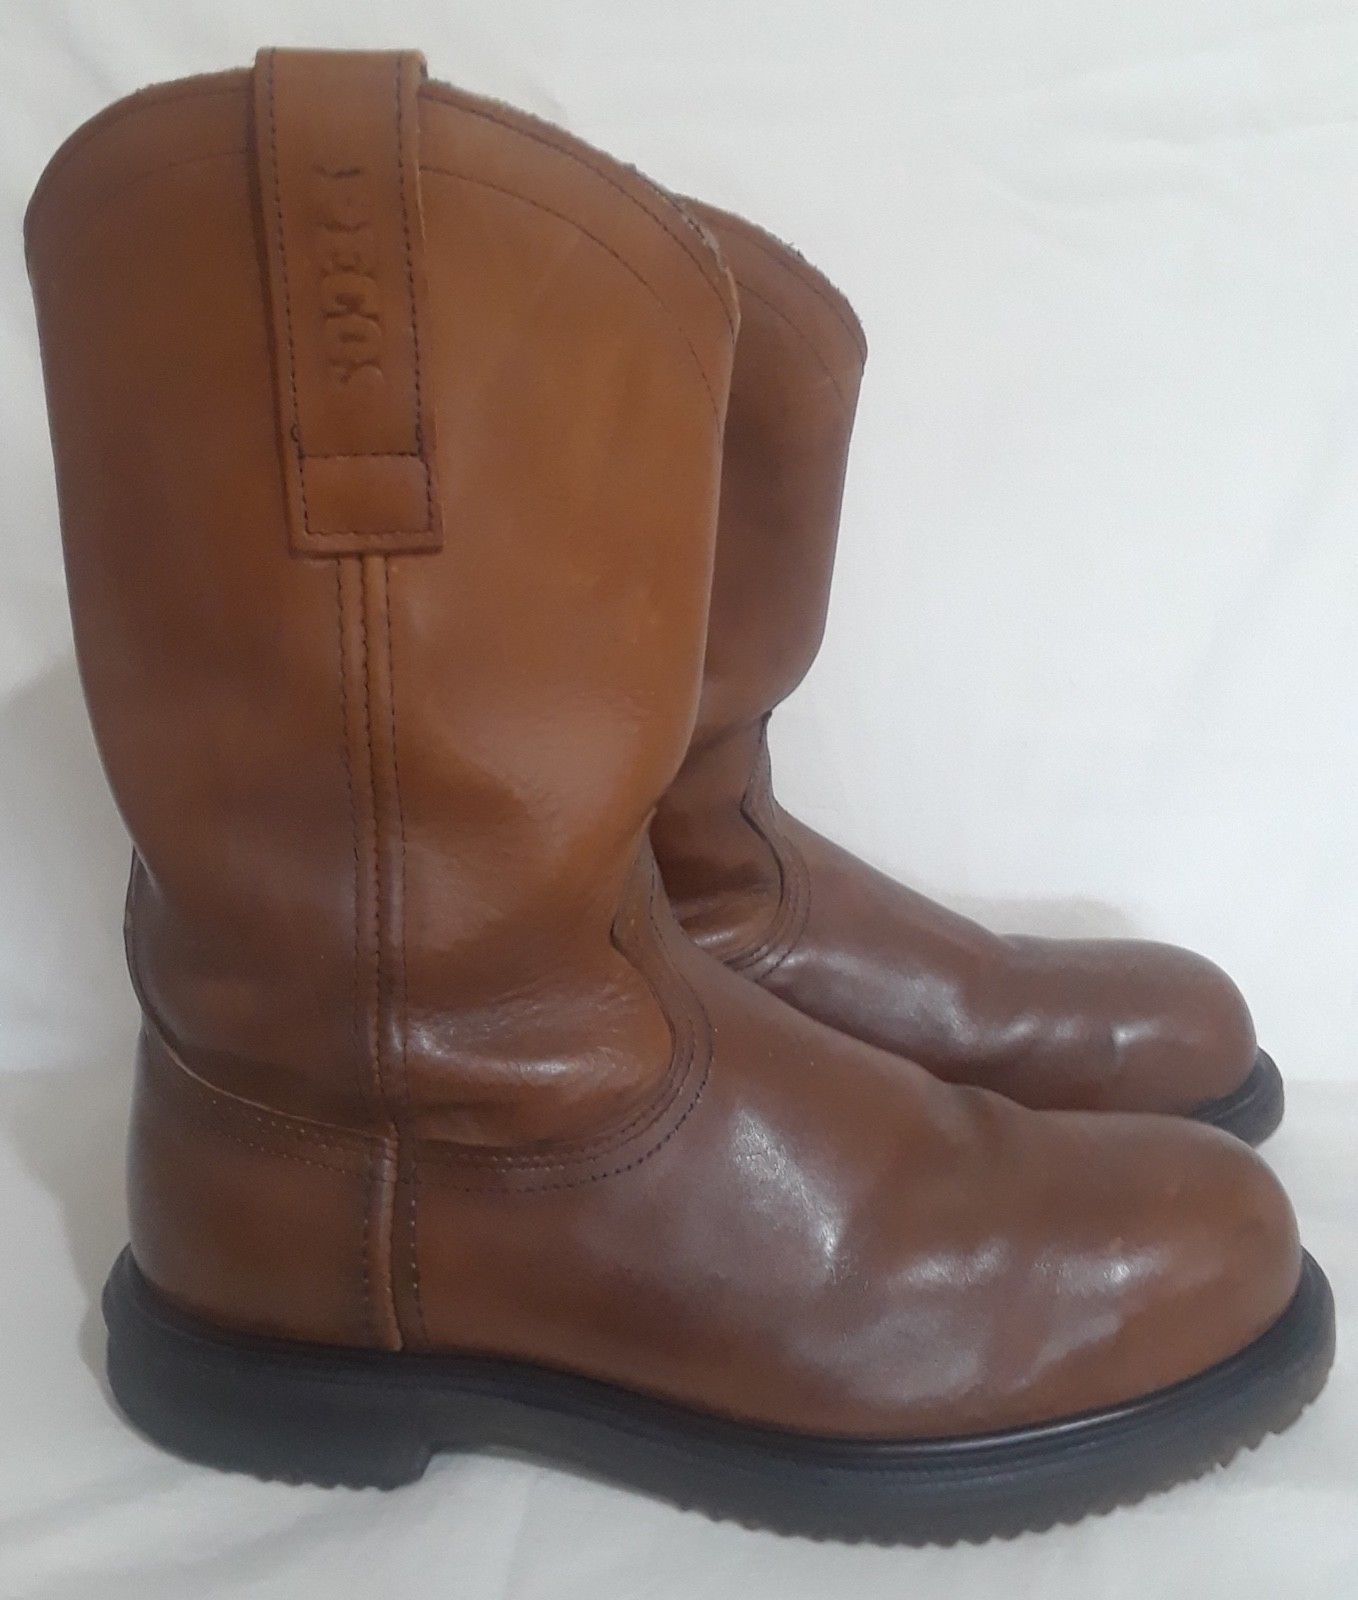 1bece3476983 Red Wing Work Boots Steel Toe Brown Leather and 50 similar items. 57